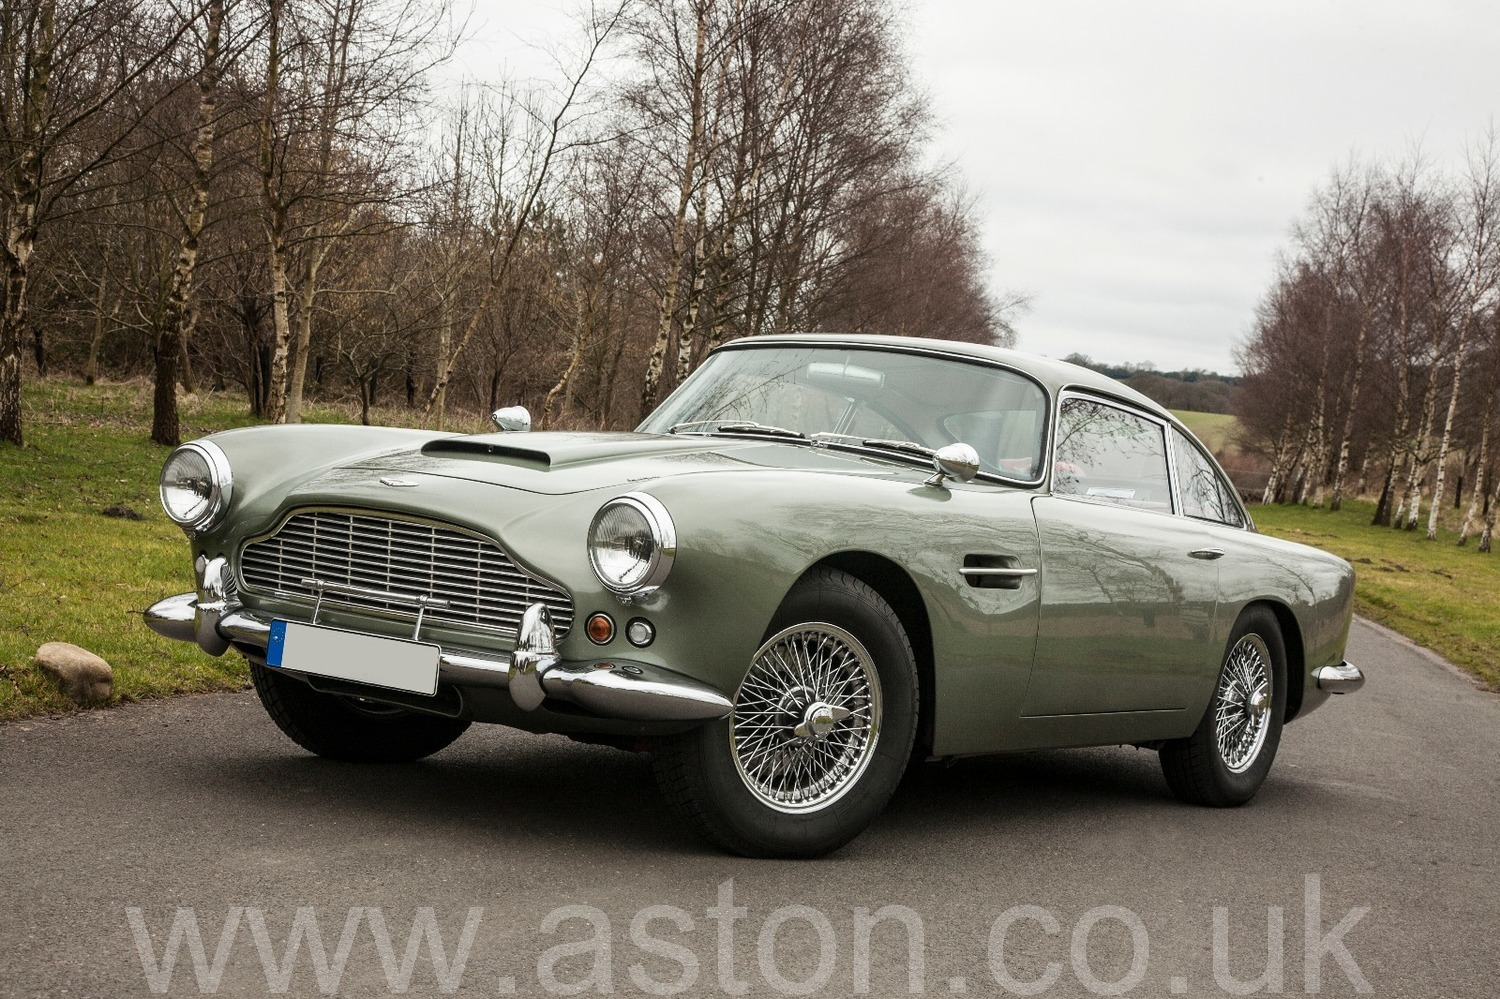 Aston Martin Db4 Series 4 1961 From Aston Workshop Aw220316